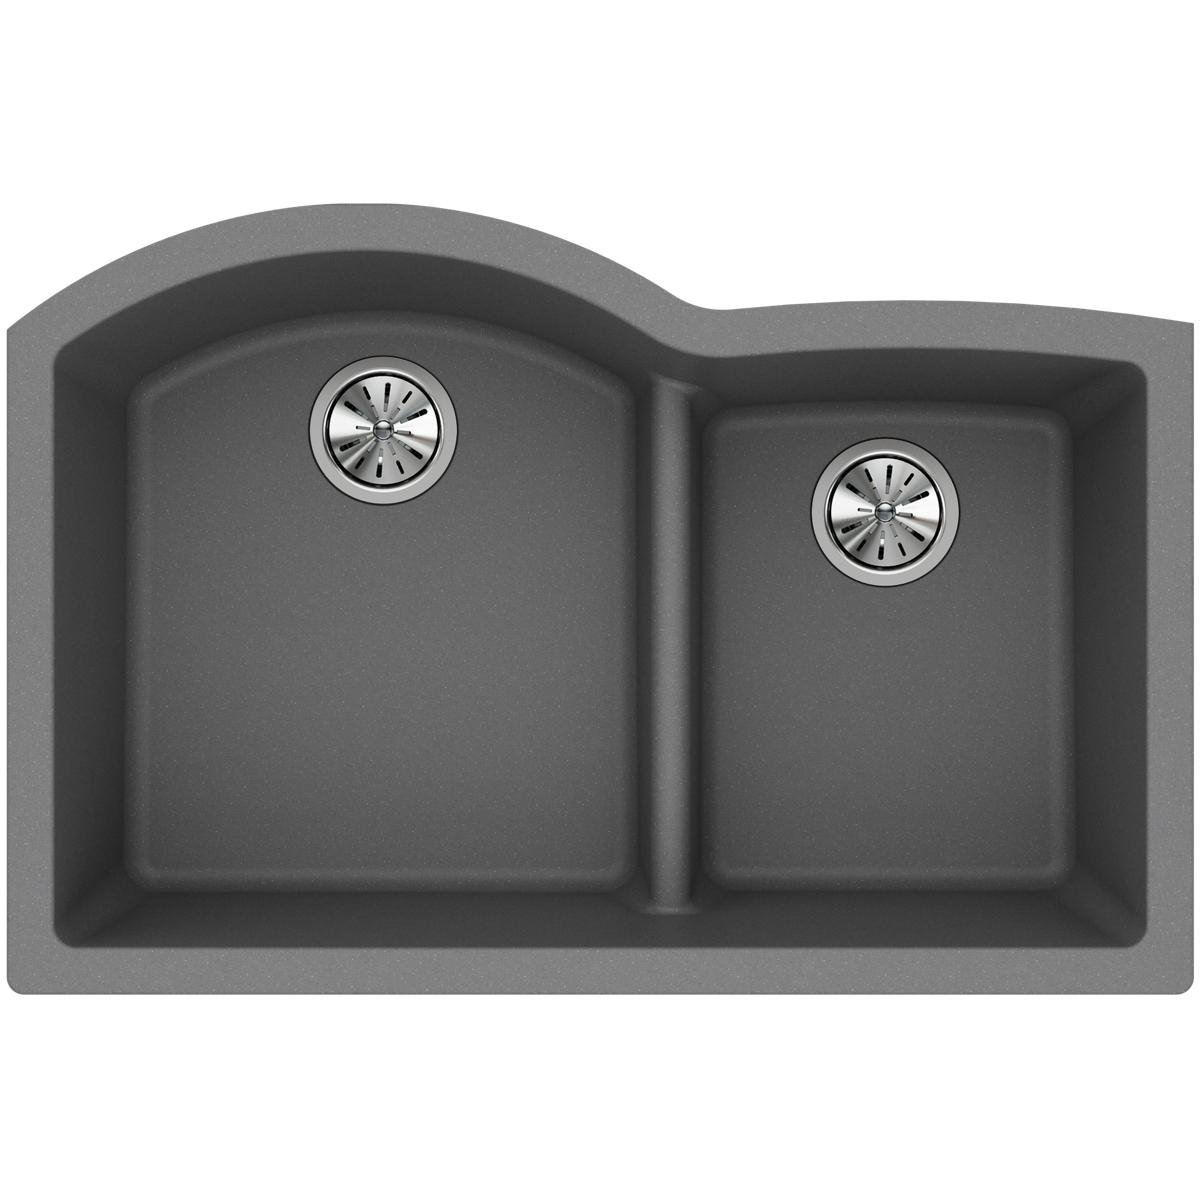 Elkay-Quartz-Classic-ELGHU3322RGS0-Greystone-Offset-60-40-Double-Bowl-Undermount-Sink-with-Aqua-Divide